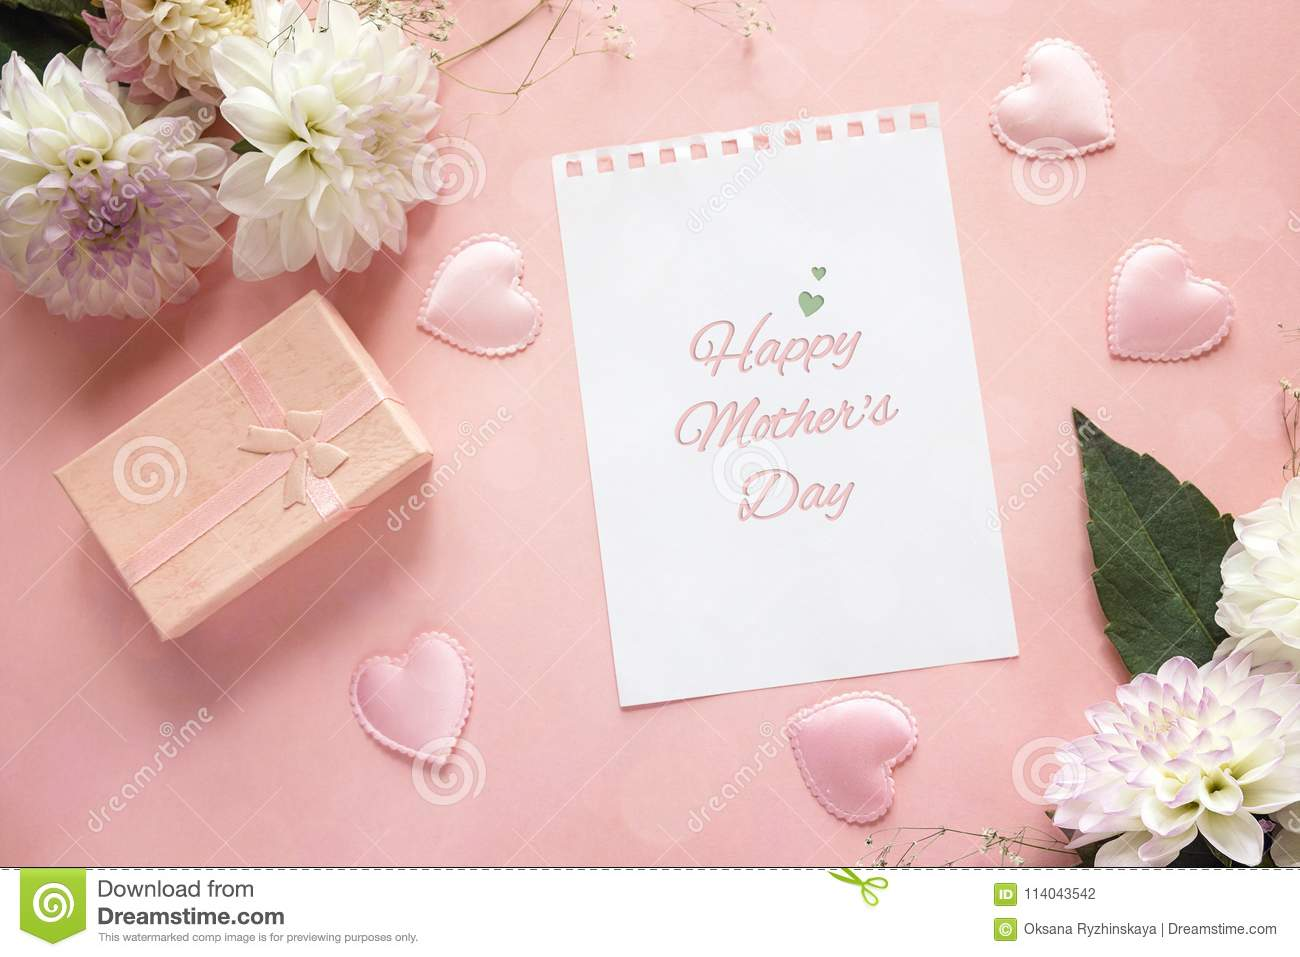 Mothers Day greeting message with dahlias and gift box on a pink